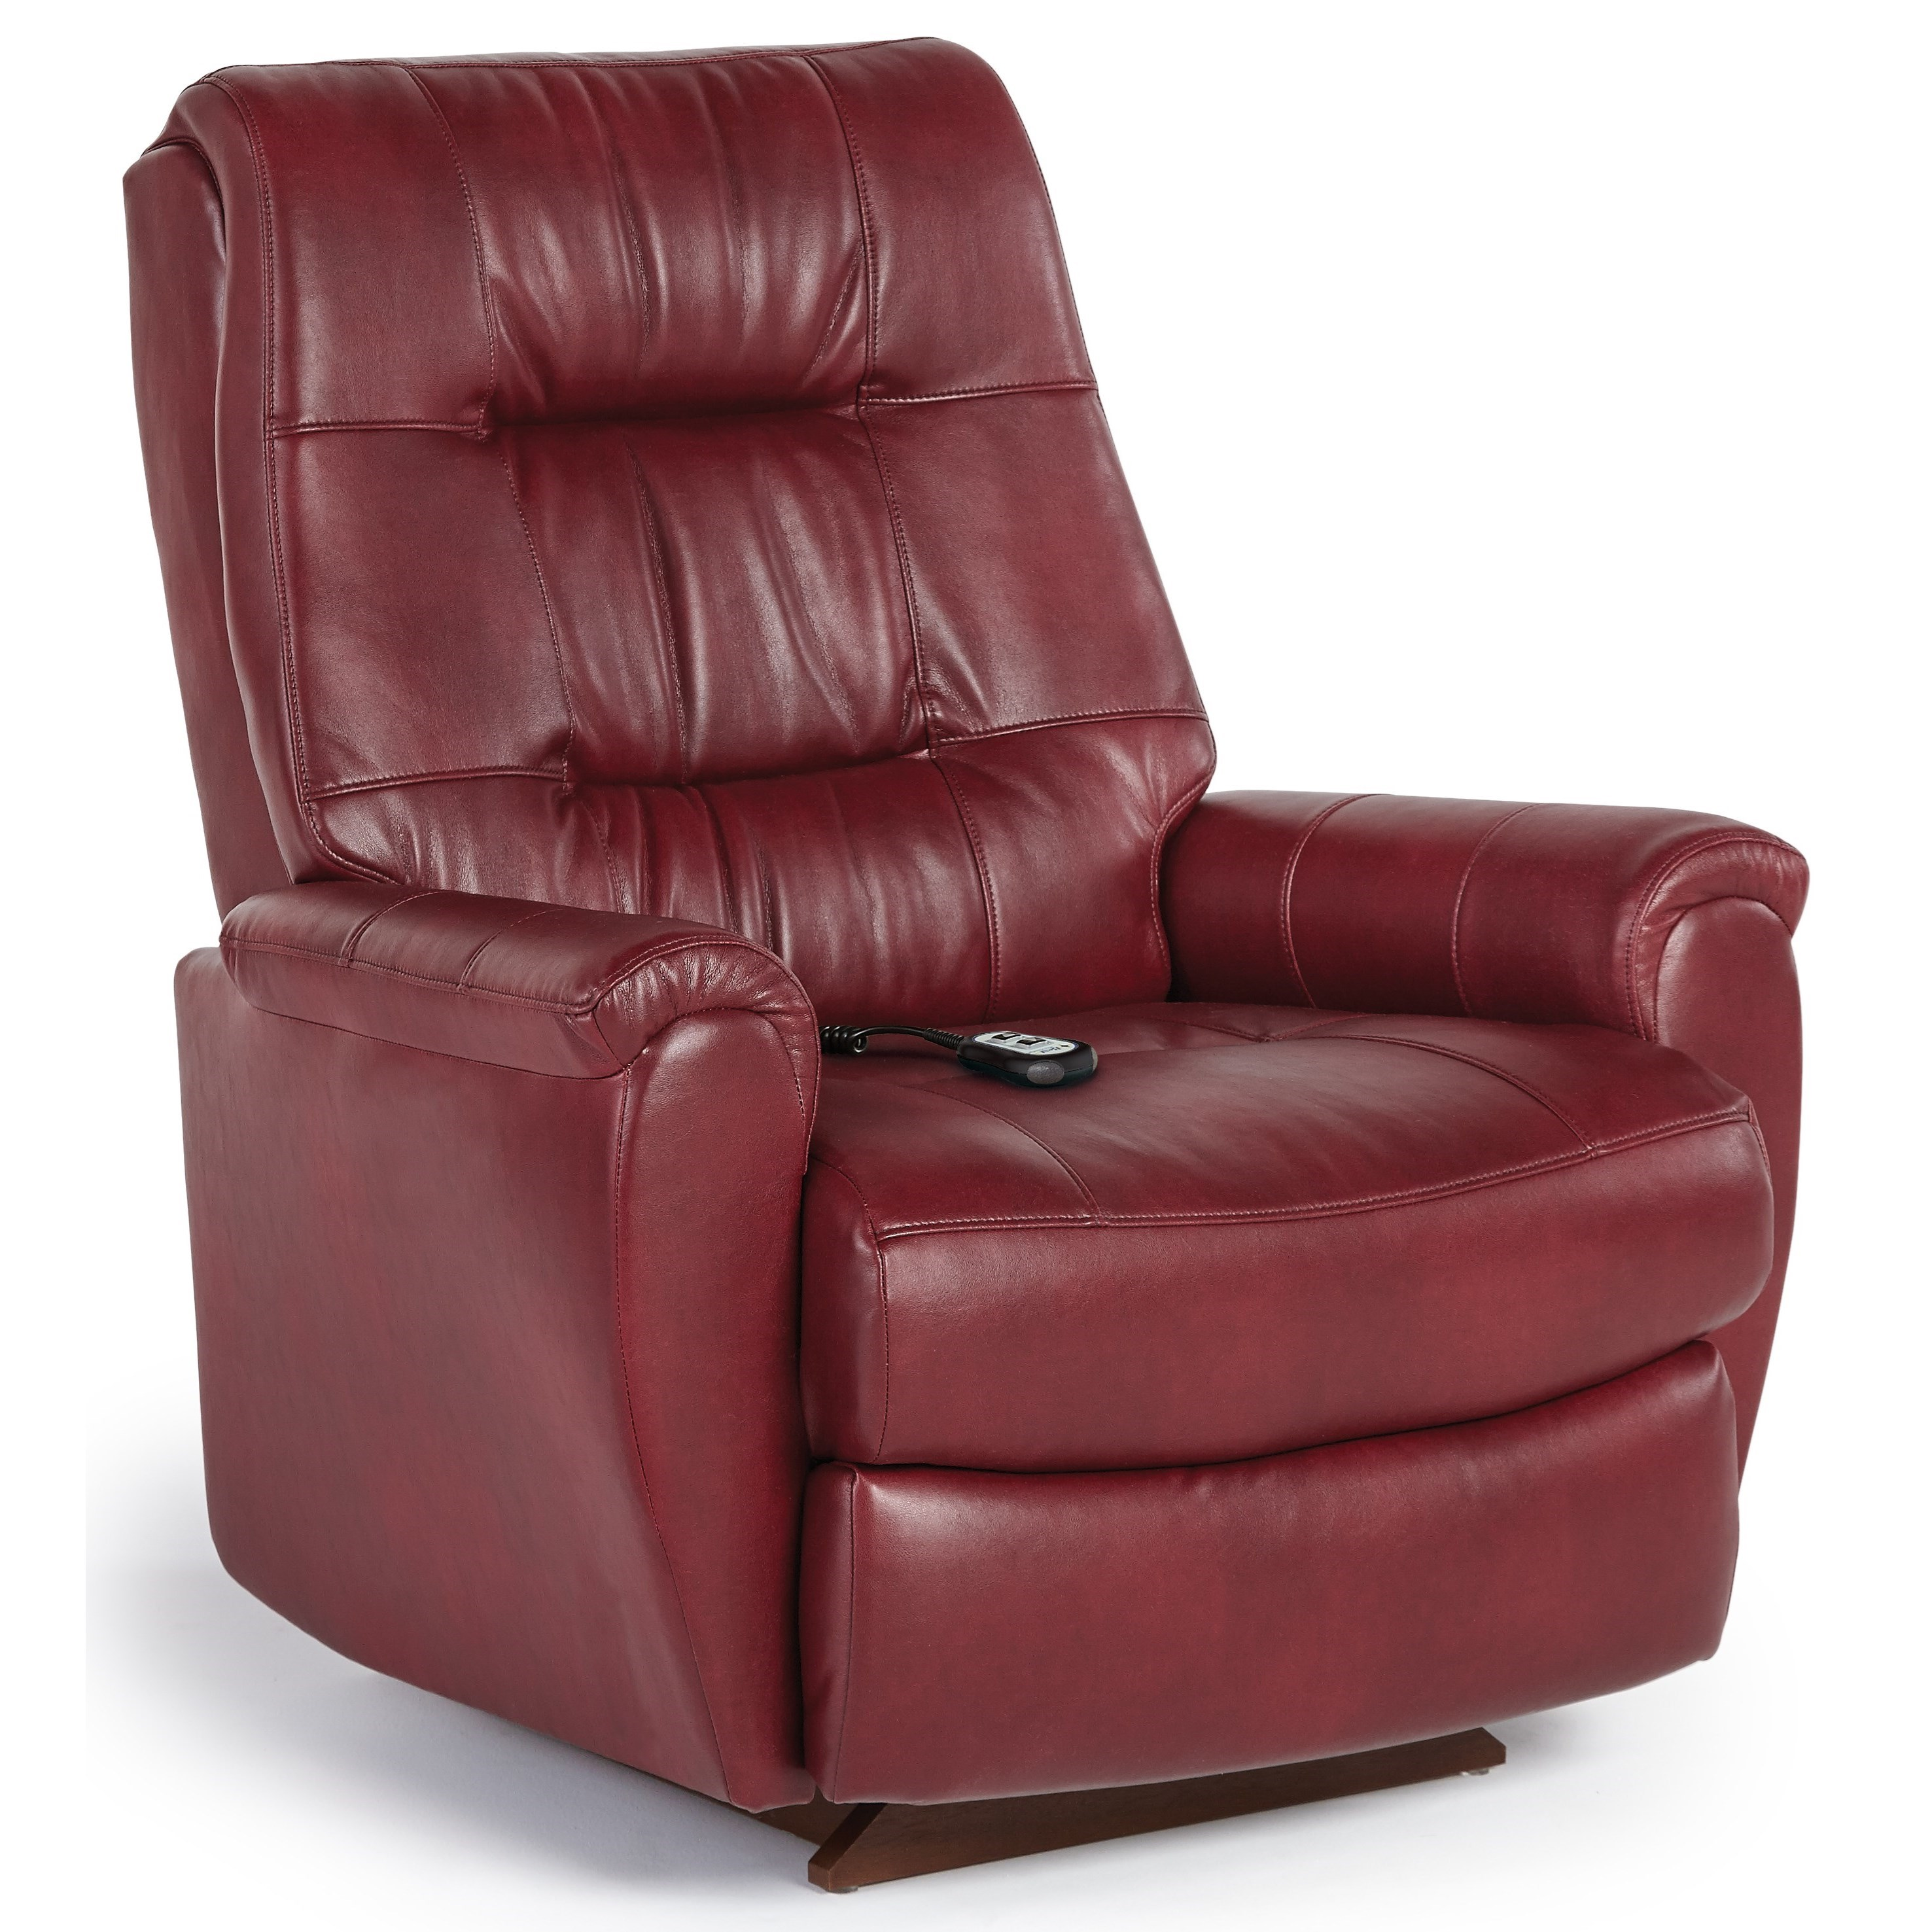 Best Home Furnishings Recliners - Petite Power Lift Recliner - Item Number: 2A71U-26738U